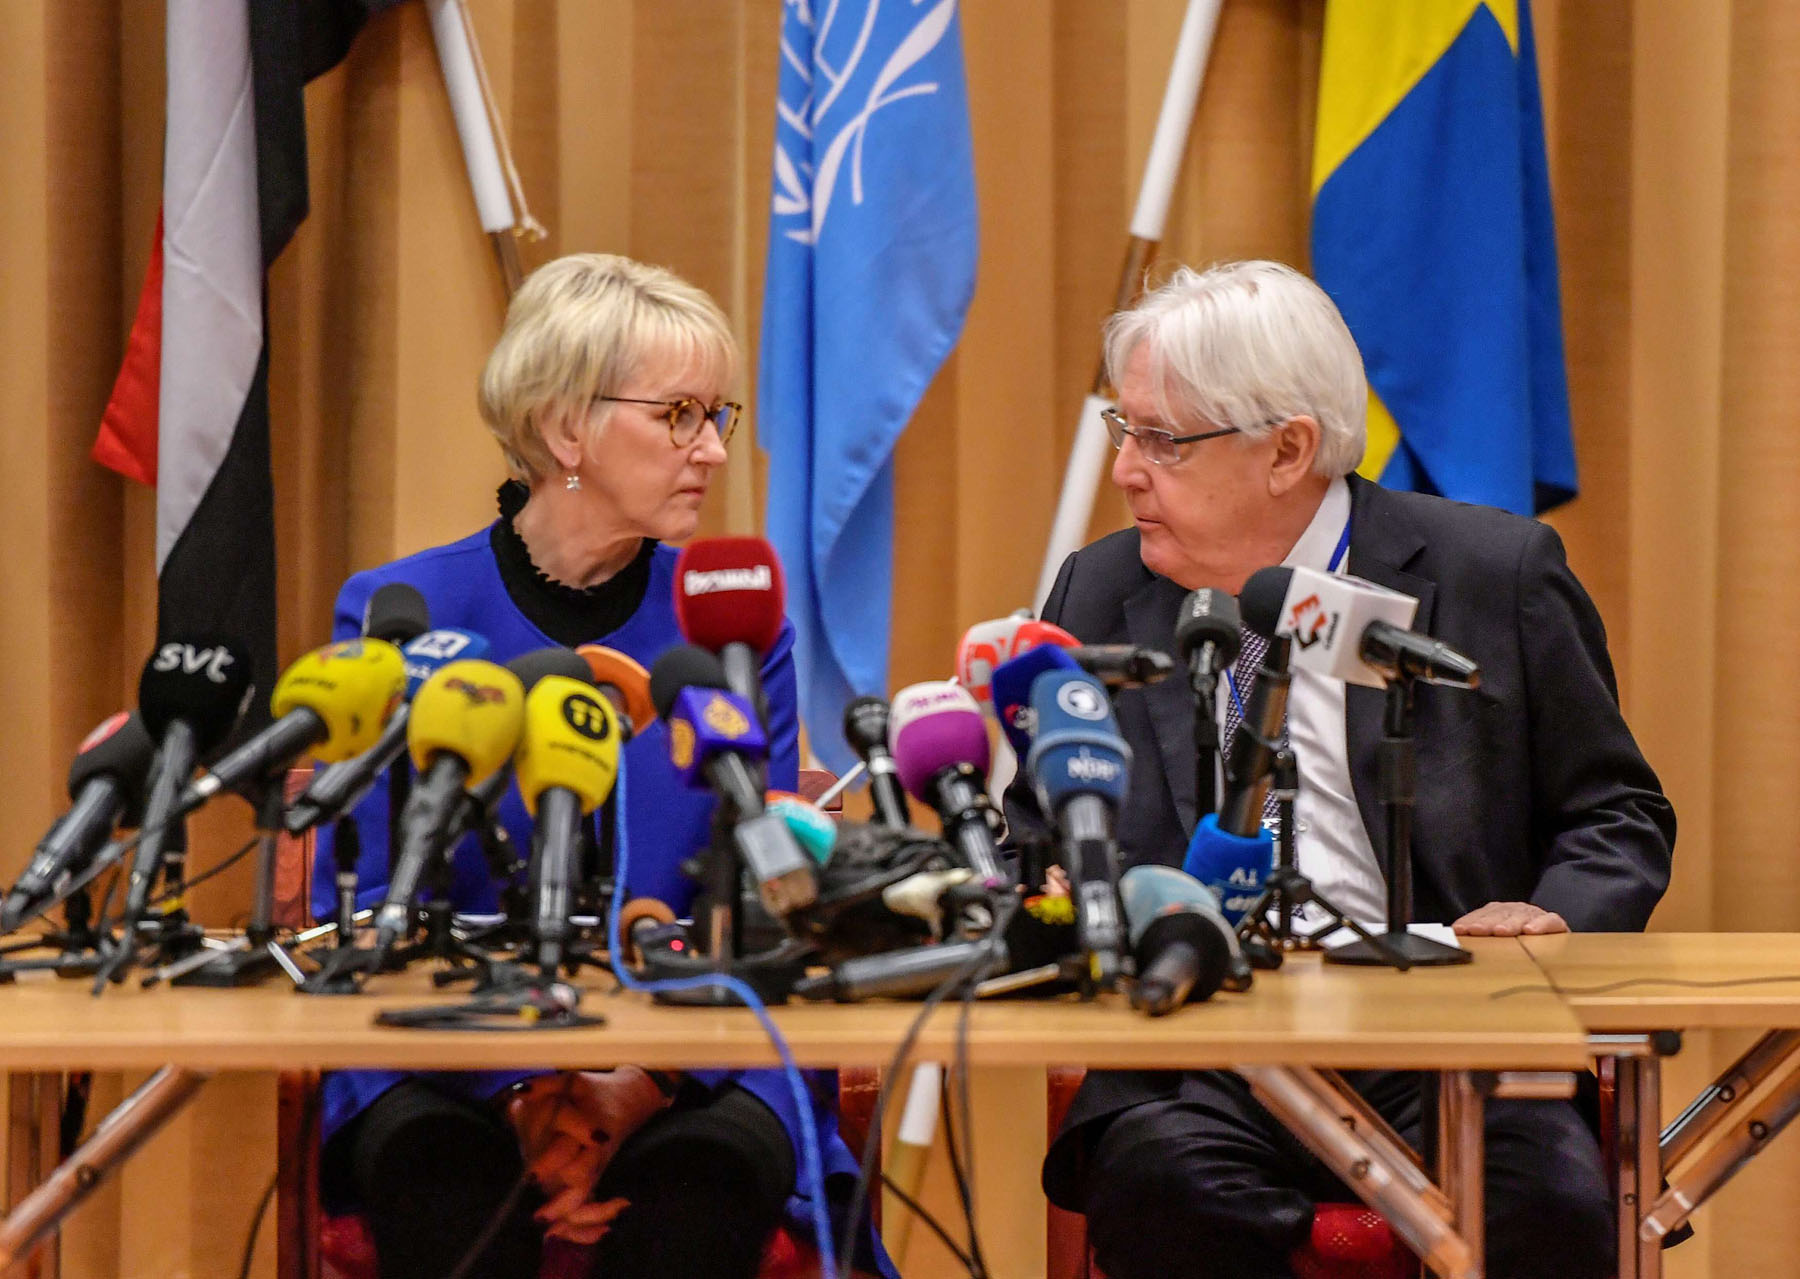 Sticky points. Swedish Foreign Minister Margot Wallstrom (L) and UN Envoy to Yemen Martin Griffiths attend the opening news conference on UN-sponsored peace talks for Yemen at Johannesberg Castle, December 6.  (Stina Stjernkvist /TT News Agency)